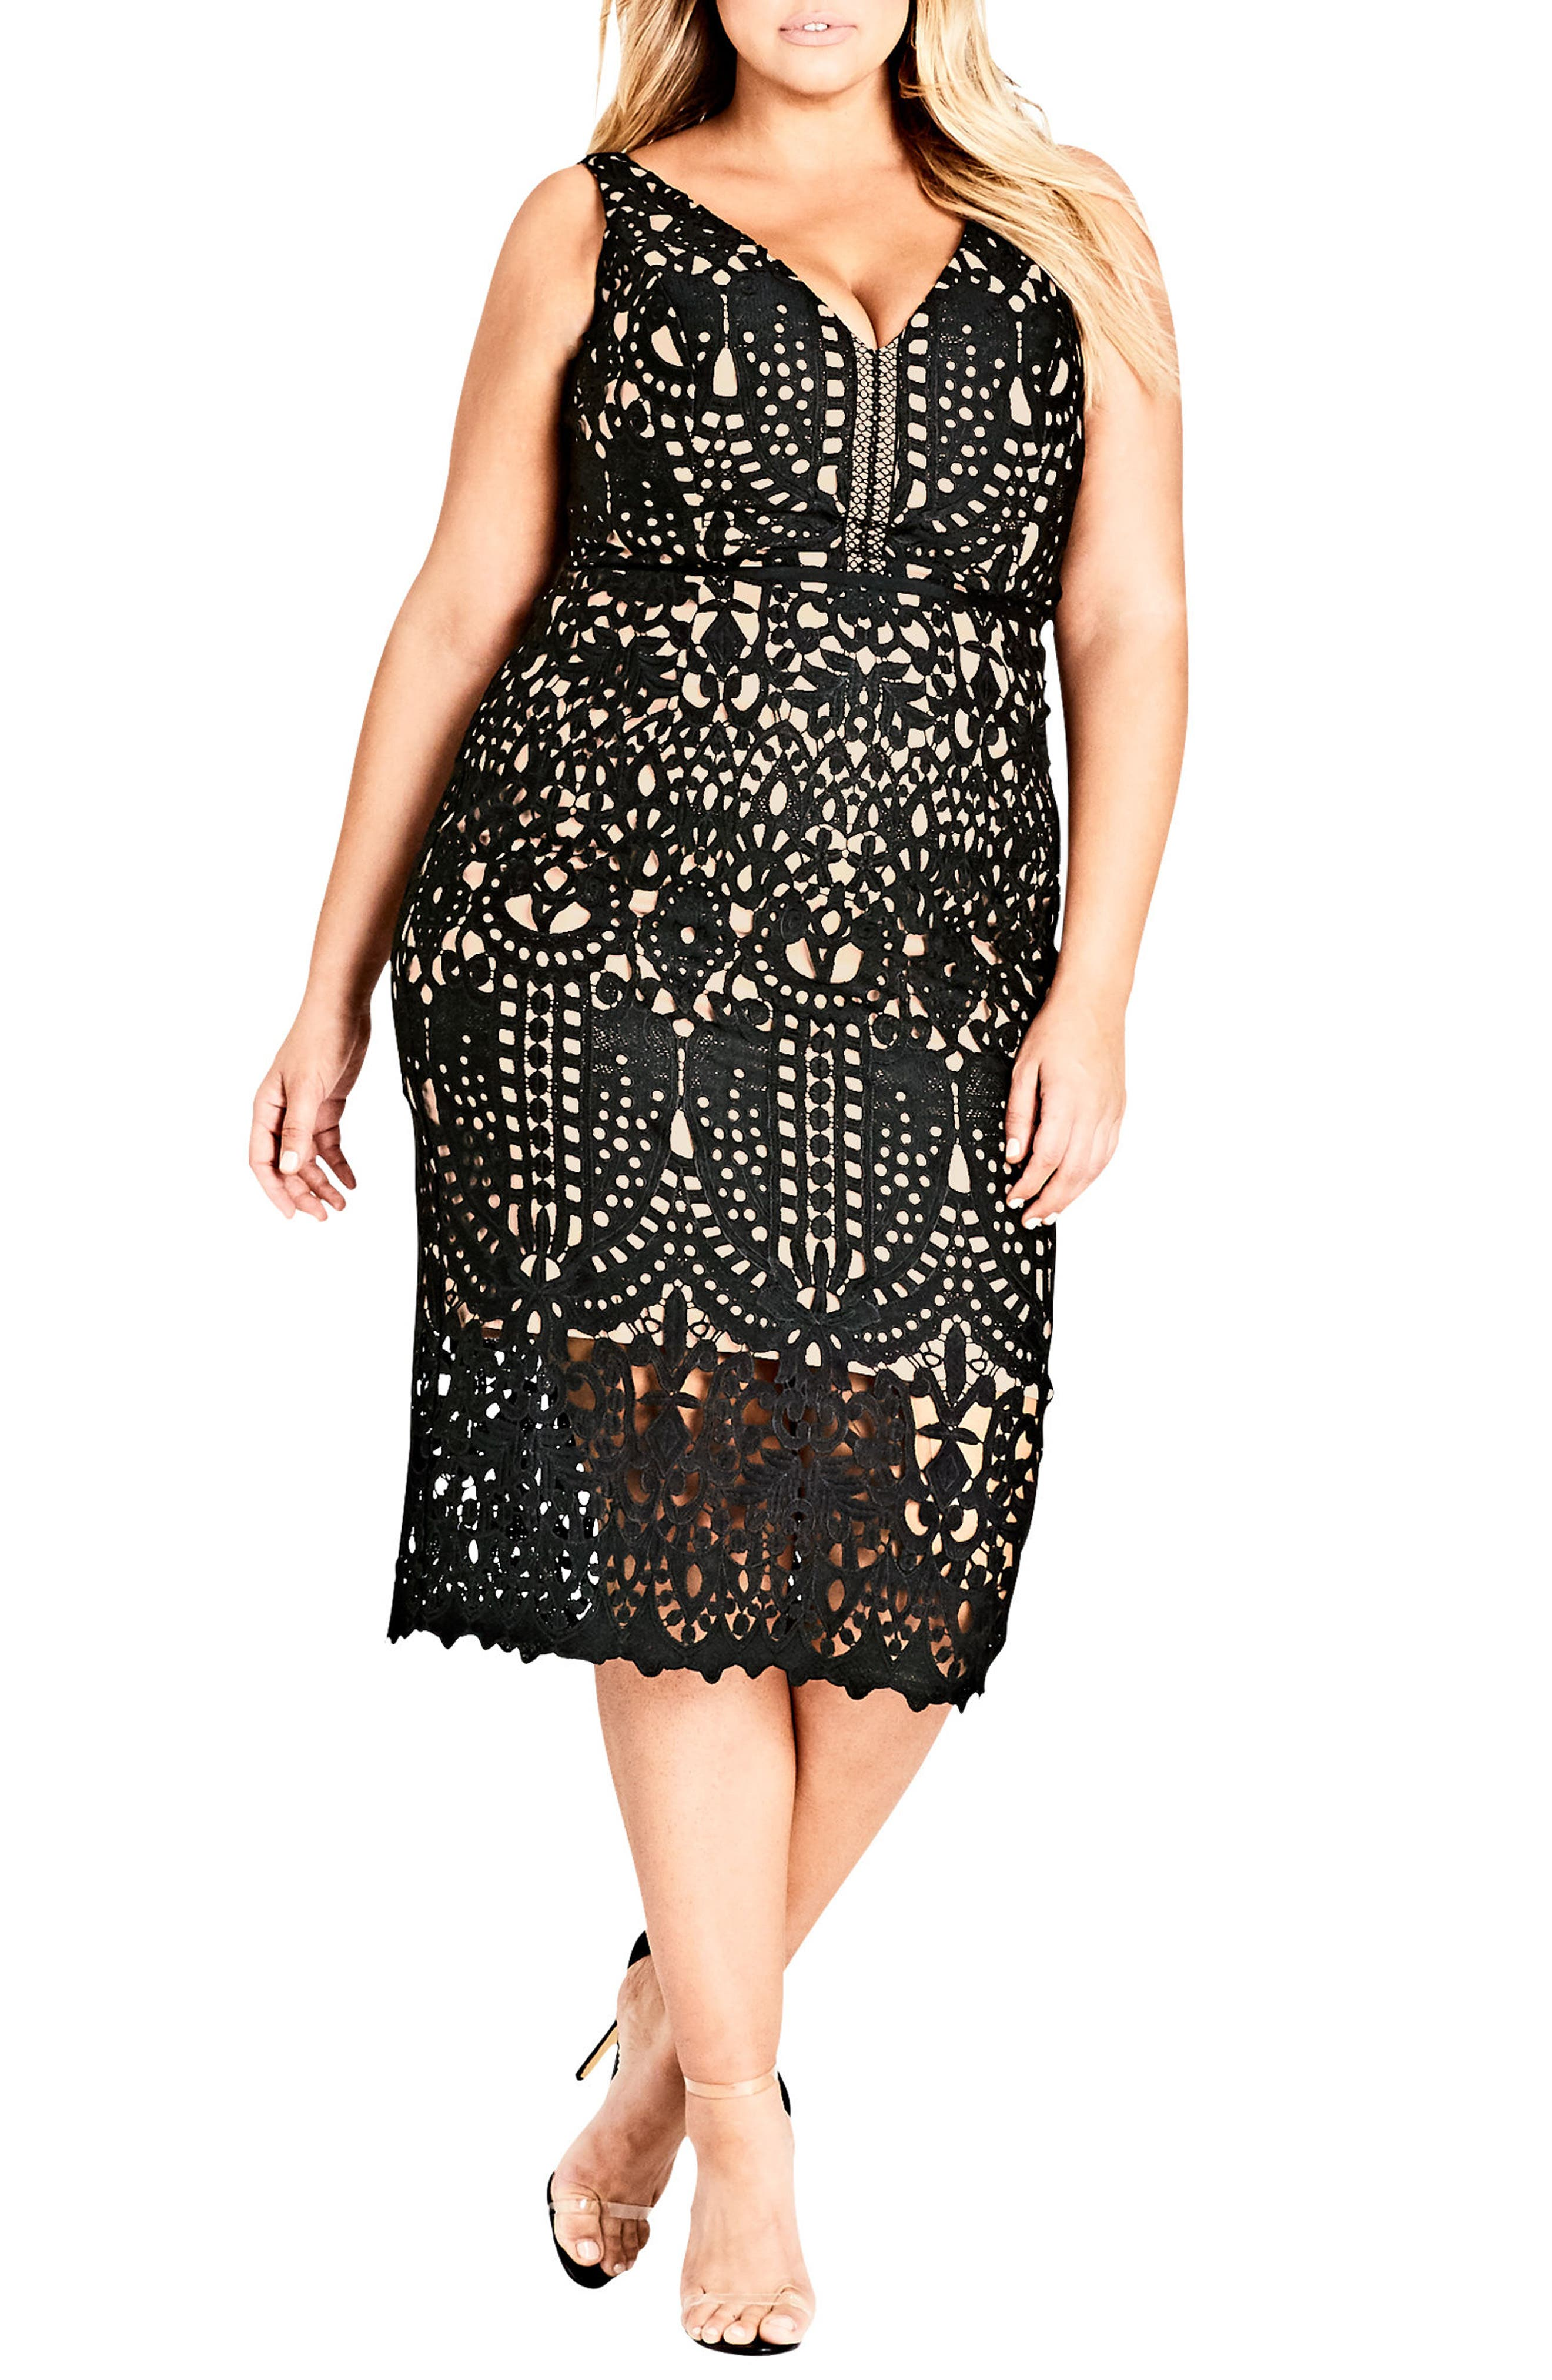 Alternate Image 1 Selected - City Chic All Class Lace Sheath Dress (Plus Size)